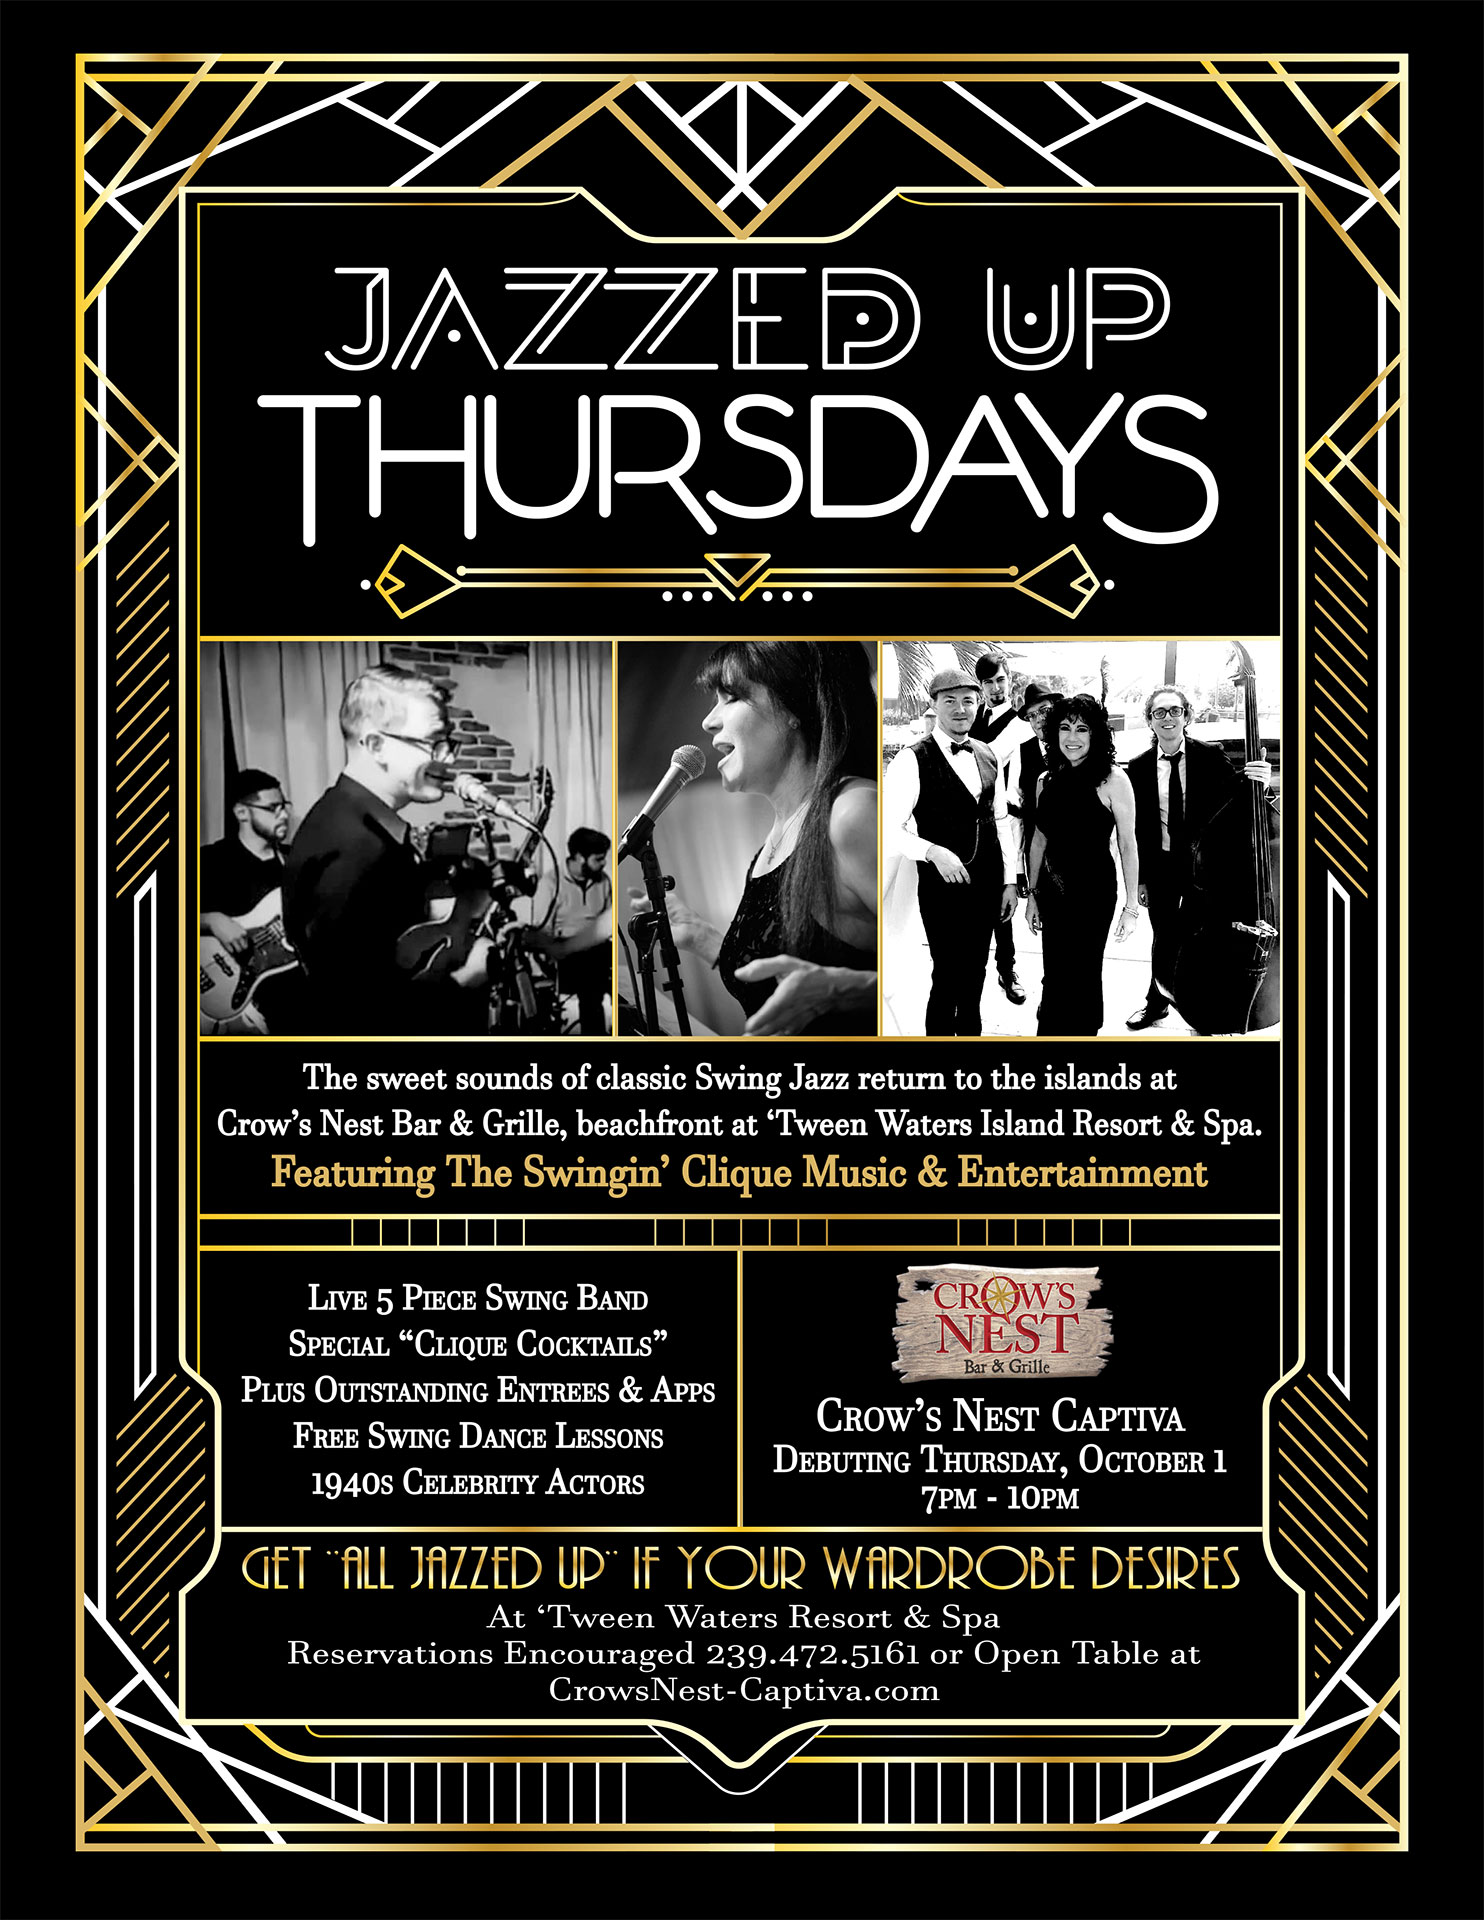 Sanibel Island Live Music Jazz Crow's Nest Bar & Grille Captiva Island